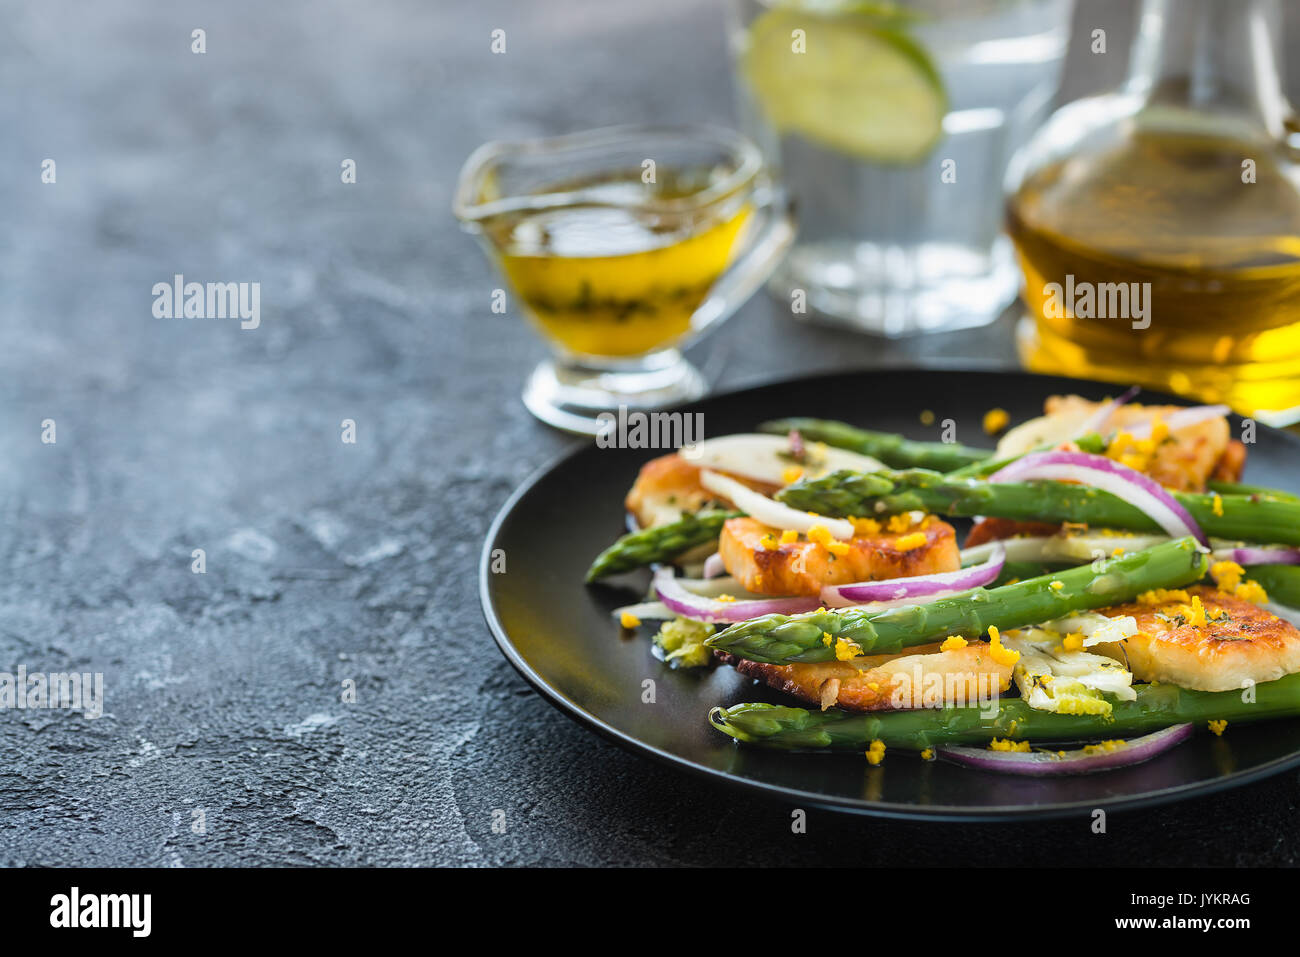 Salad with fried halloumi, asparagus and orange zest. Copy space. Dark concrete background Stock Photo